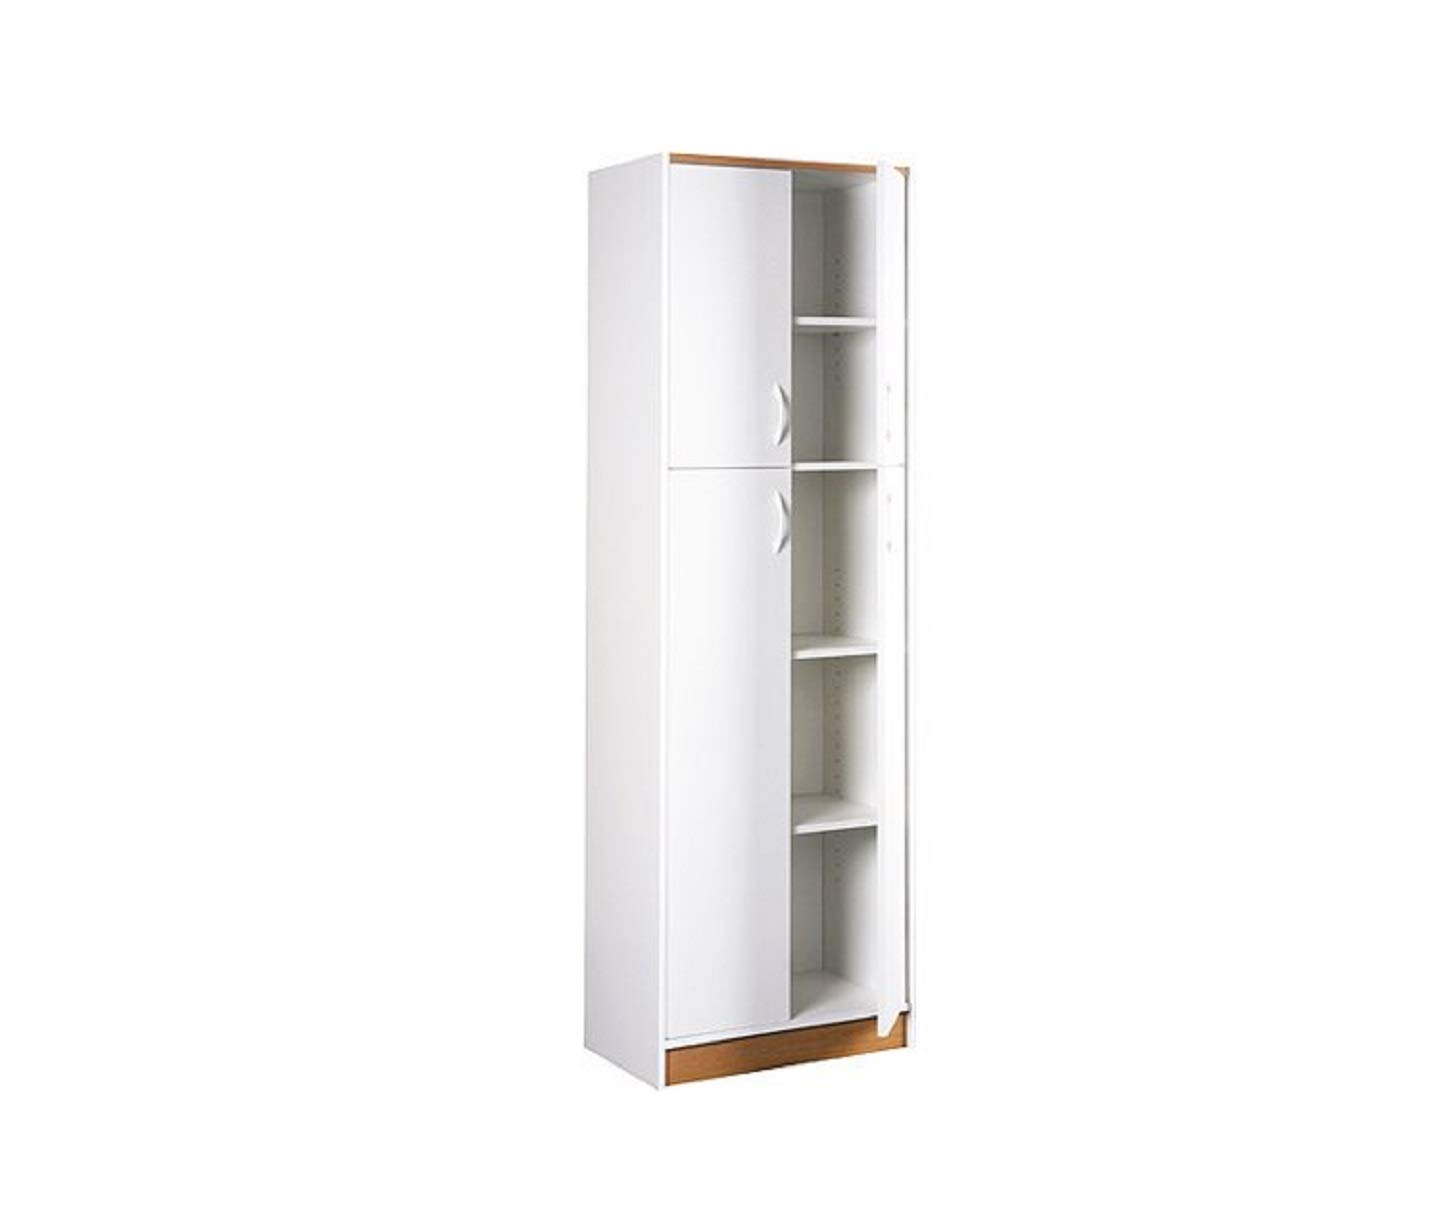 Orion 4-Door Kitchen Pantry, White by Orion